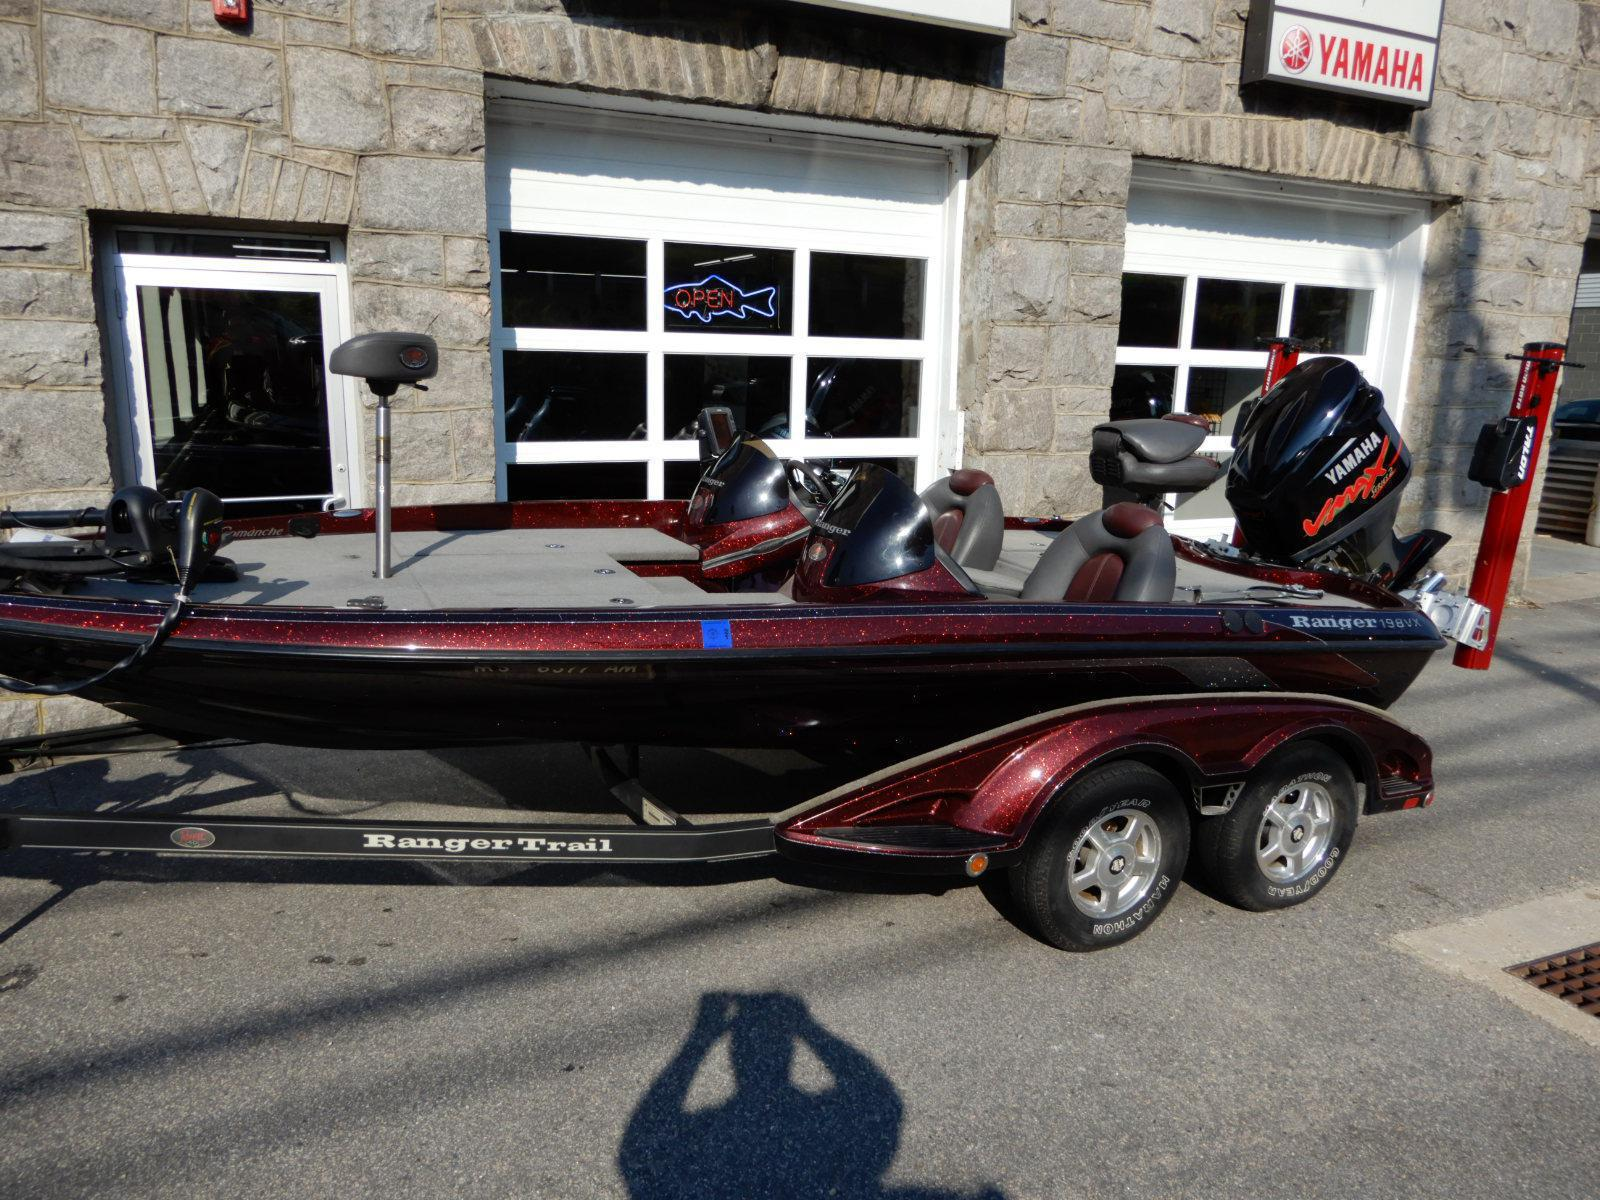 Inventory from Yamaha and Ranger Reynolds' Boats Lyme, CT